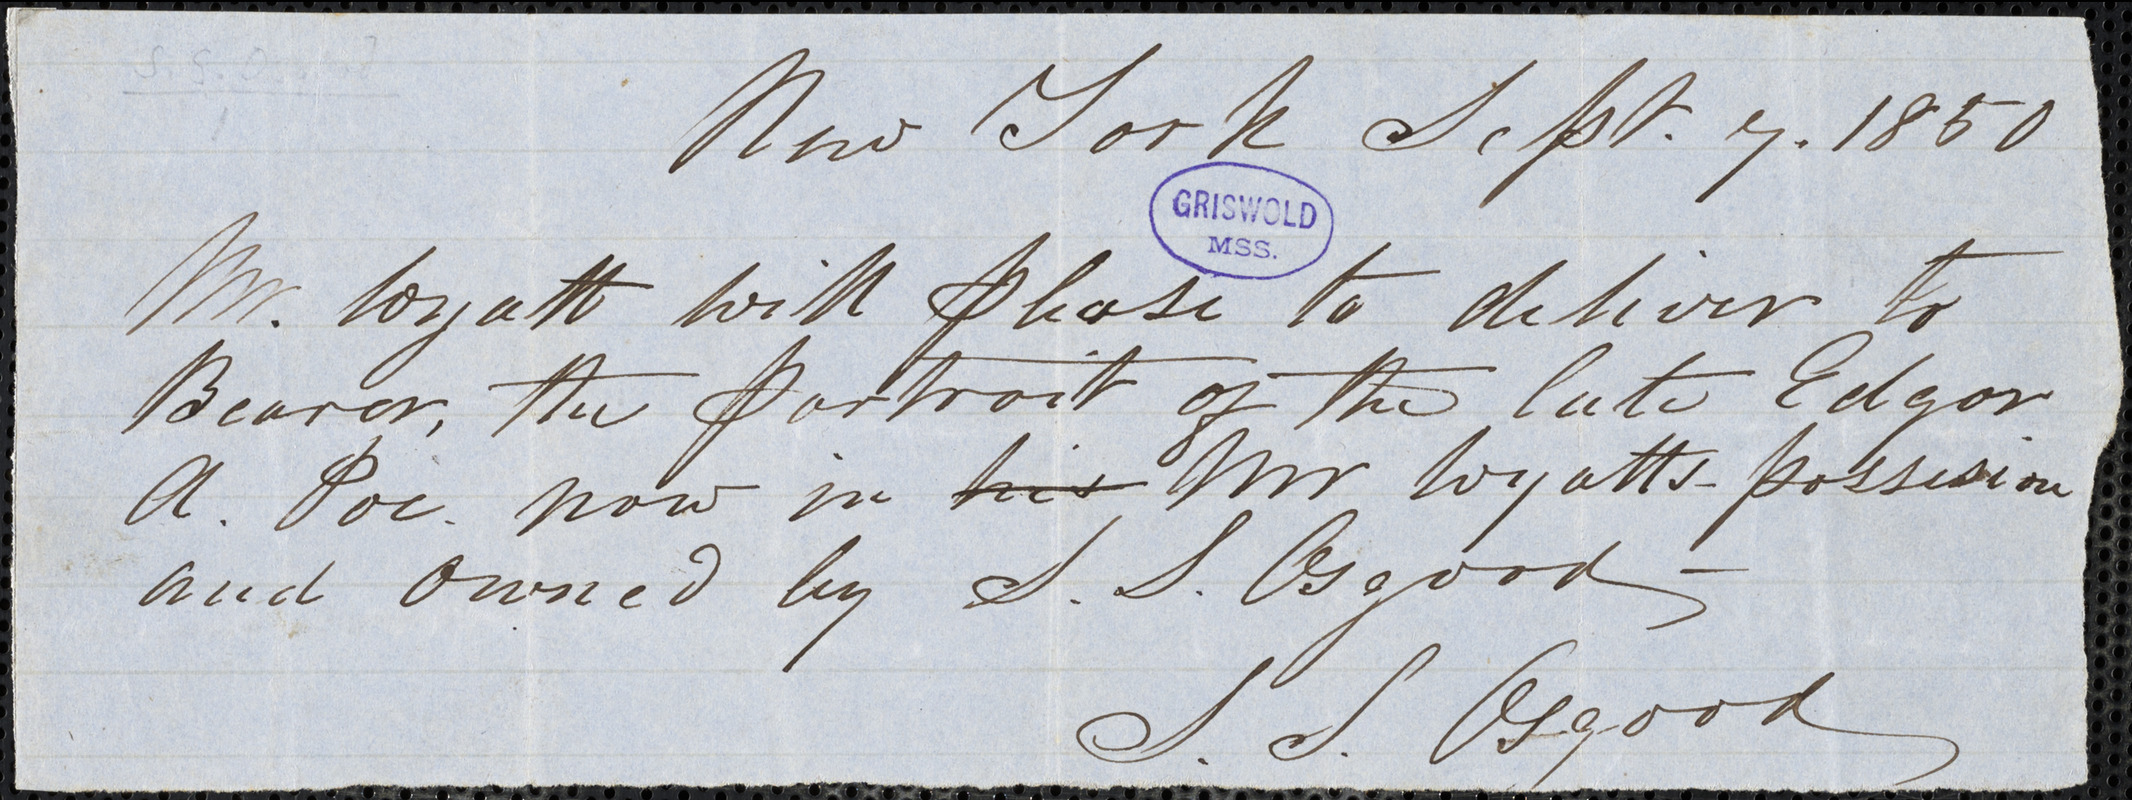 Samuel Stillman Osgood, New York, autograph note signed to Mr. Wyatt, 7 September 1850